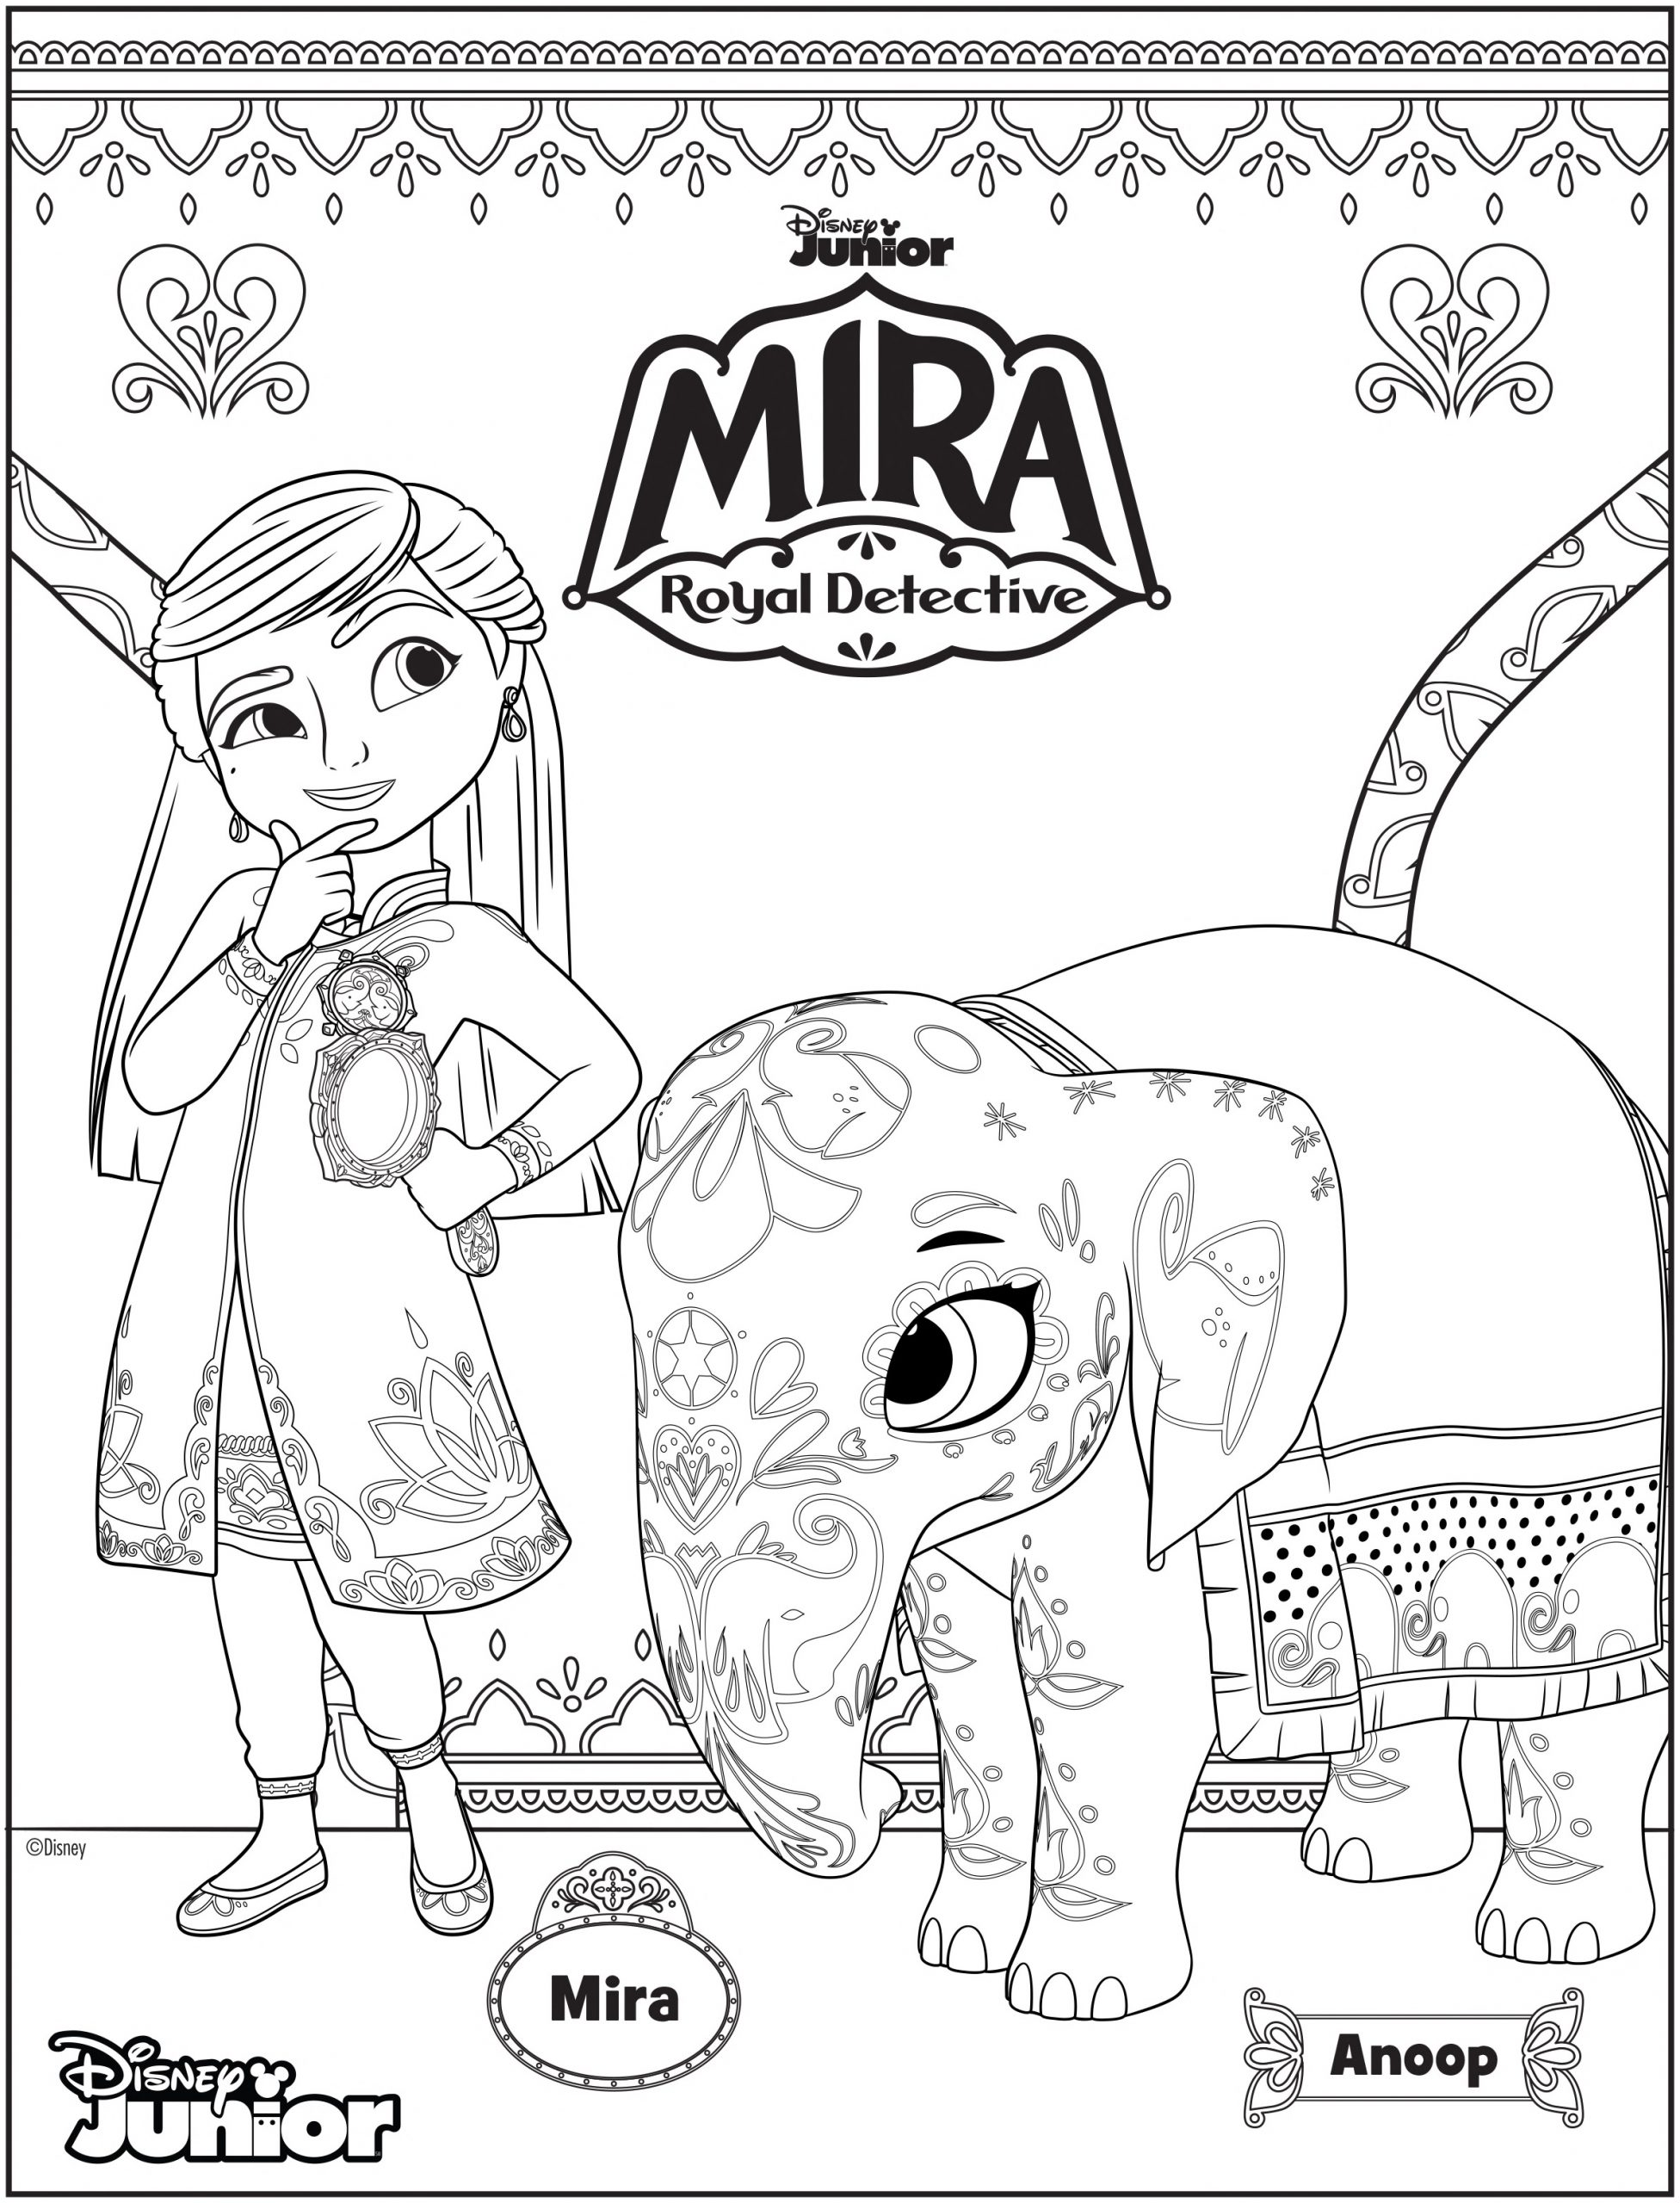 Special Mira, Royal Detective Episodes to Celebrate Asian Pacific American  Heritage Month Plus Coloring Pages! | BollySpice.com – The latest movies,  interviews in Bollywood